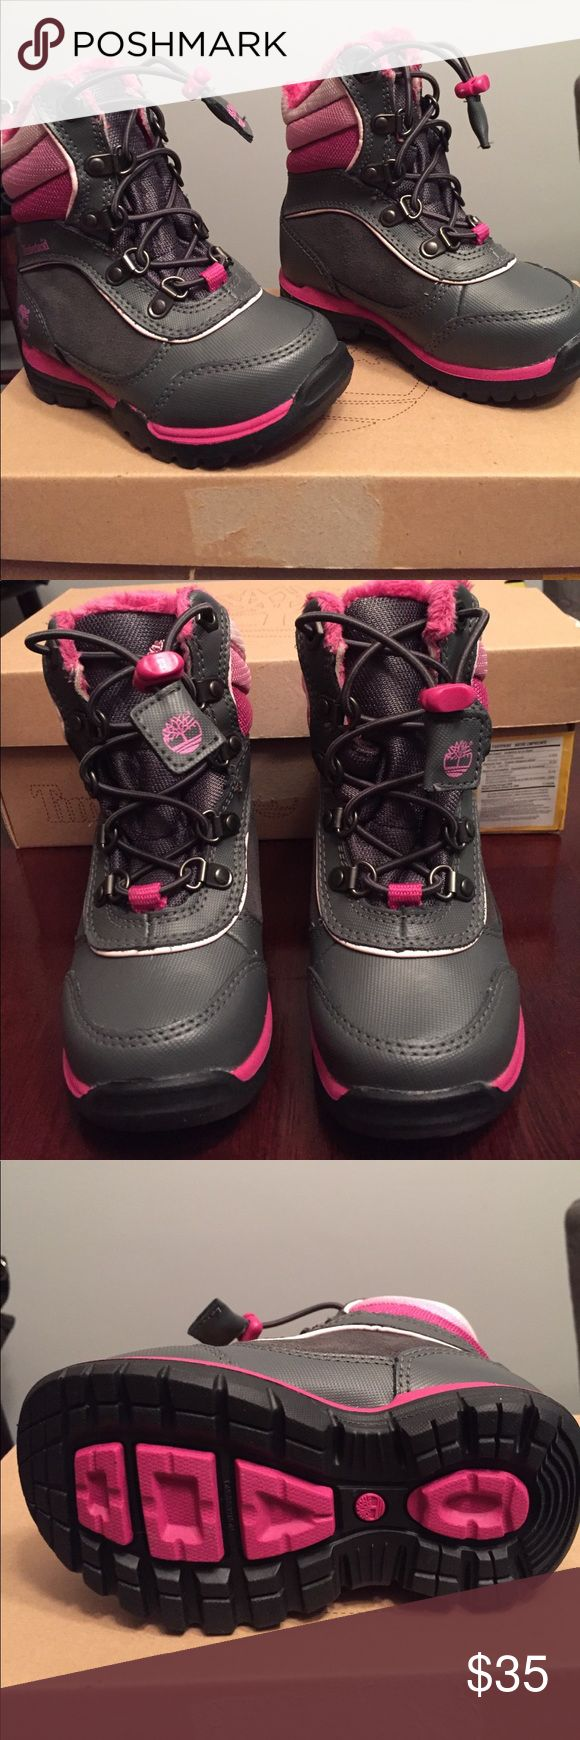 Girls timberland boots NWOT Girls timberland snow boots, plush interior, grey with multi pink stripe detail. Timberland Shoes Rain & Snow Boots